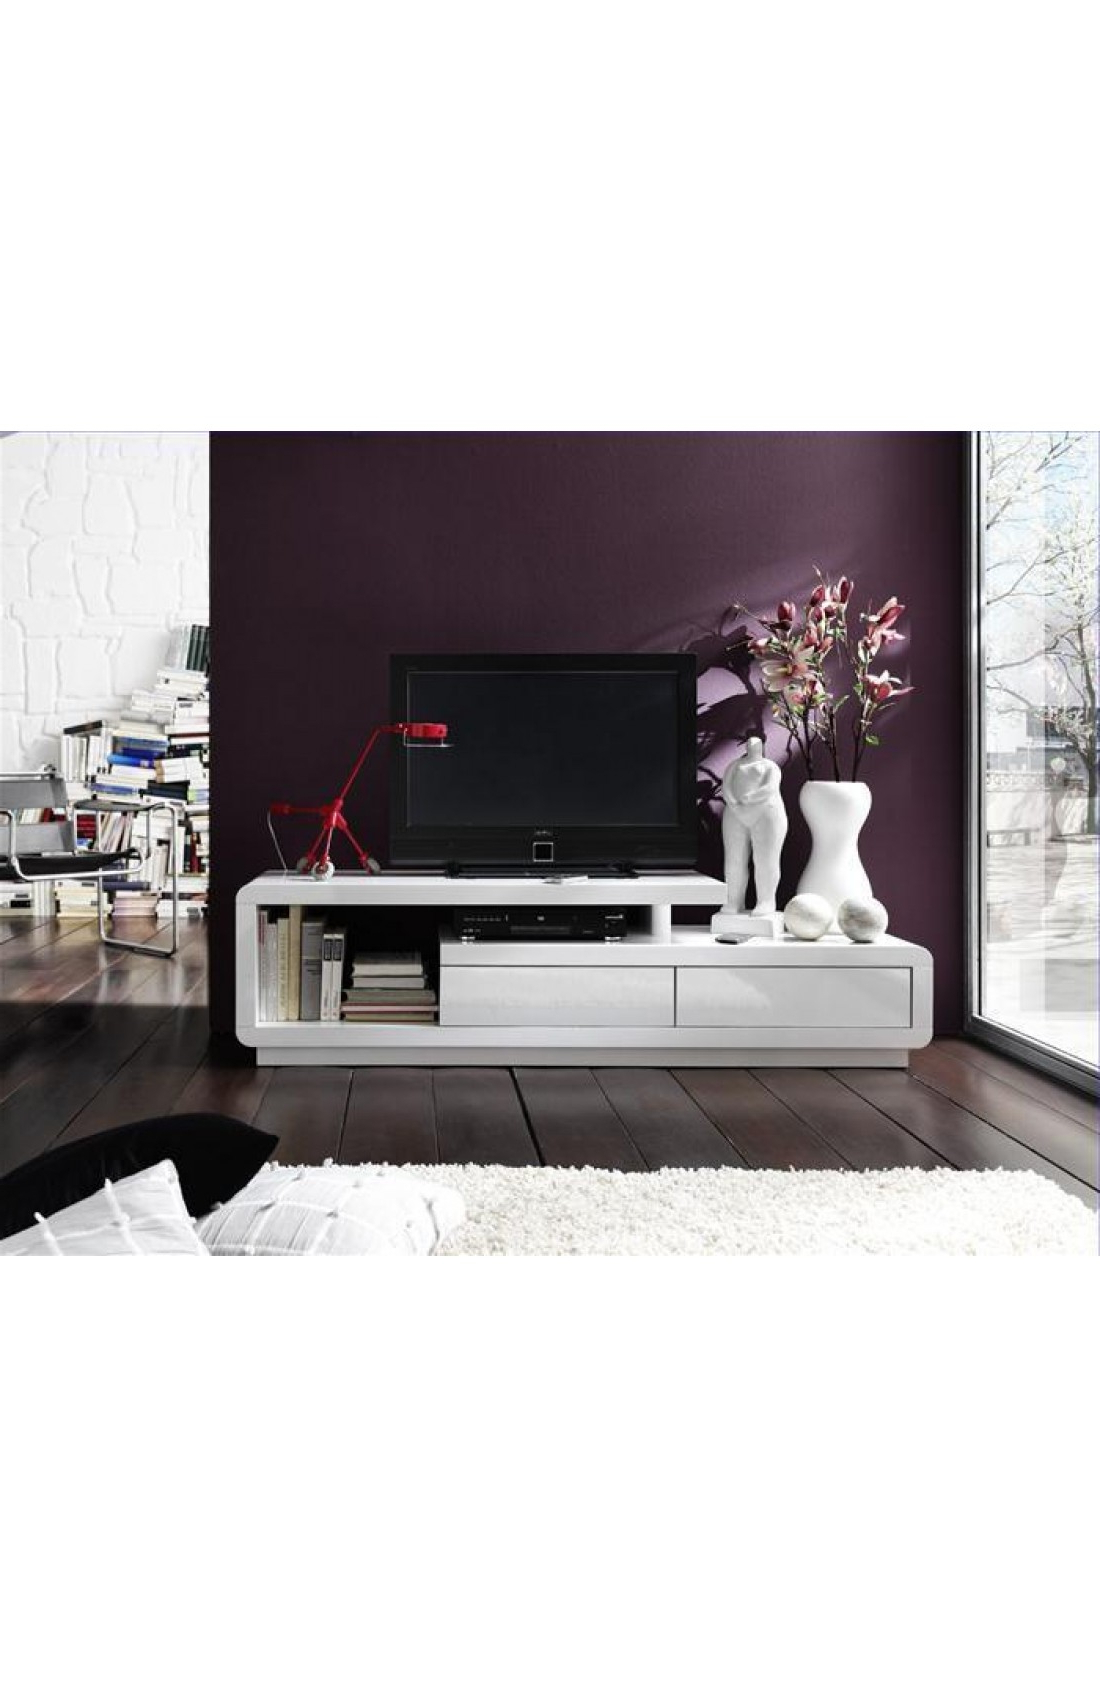 High Gloss White Tv Cabinets With Widely Used Modanuvo White Gloss Tv Unit Cabinet With Drawers (View 4 of 20)